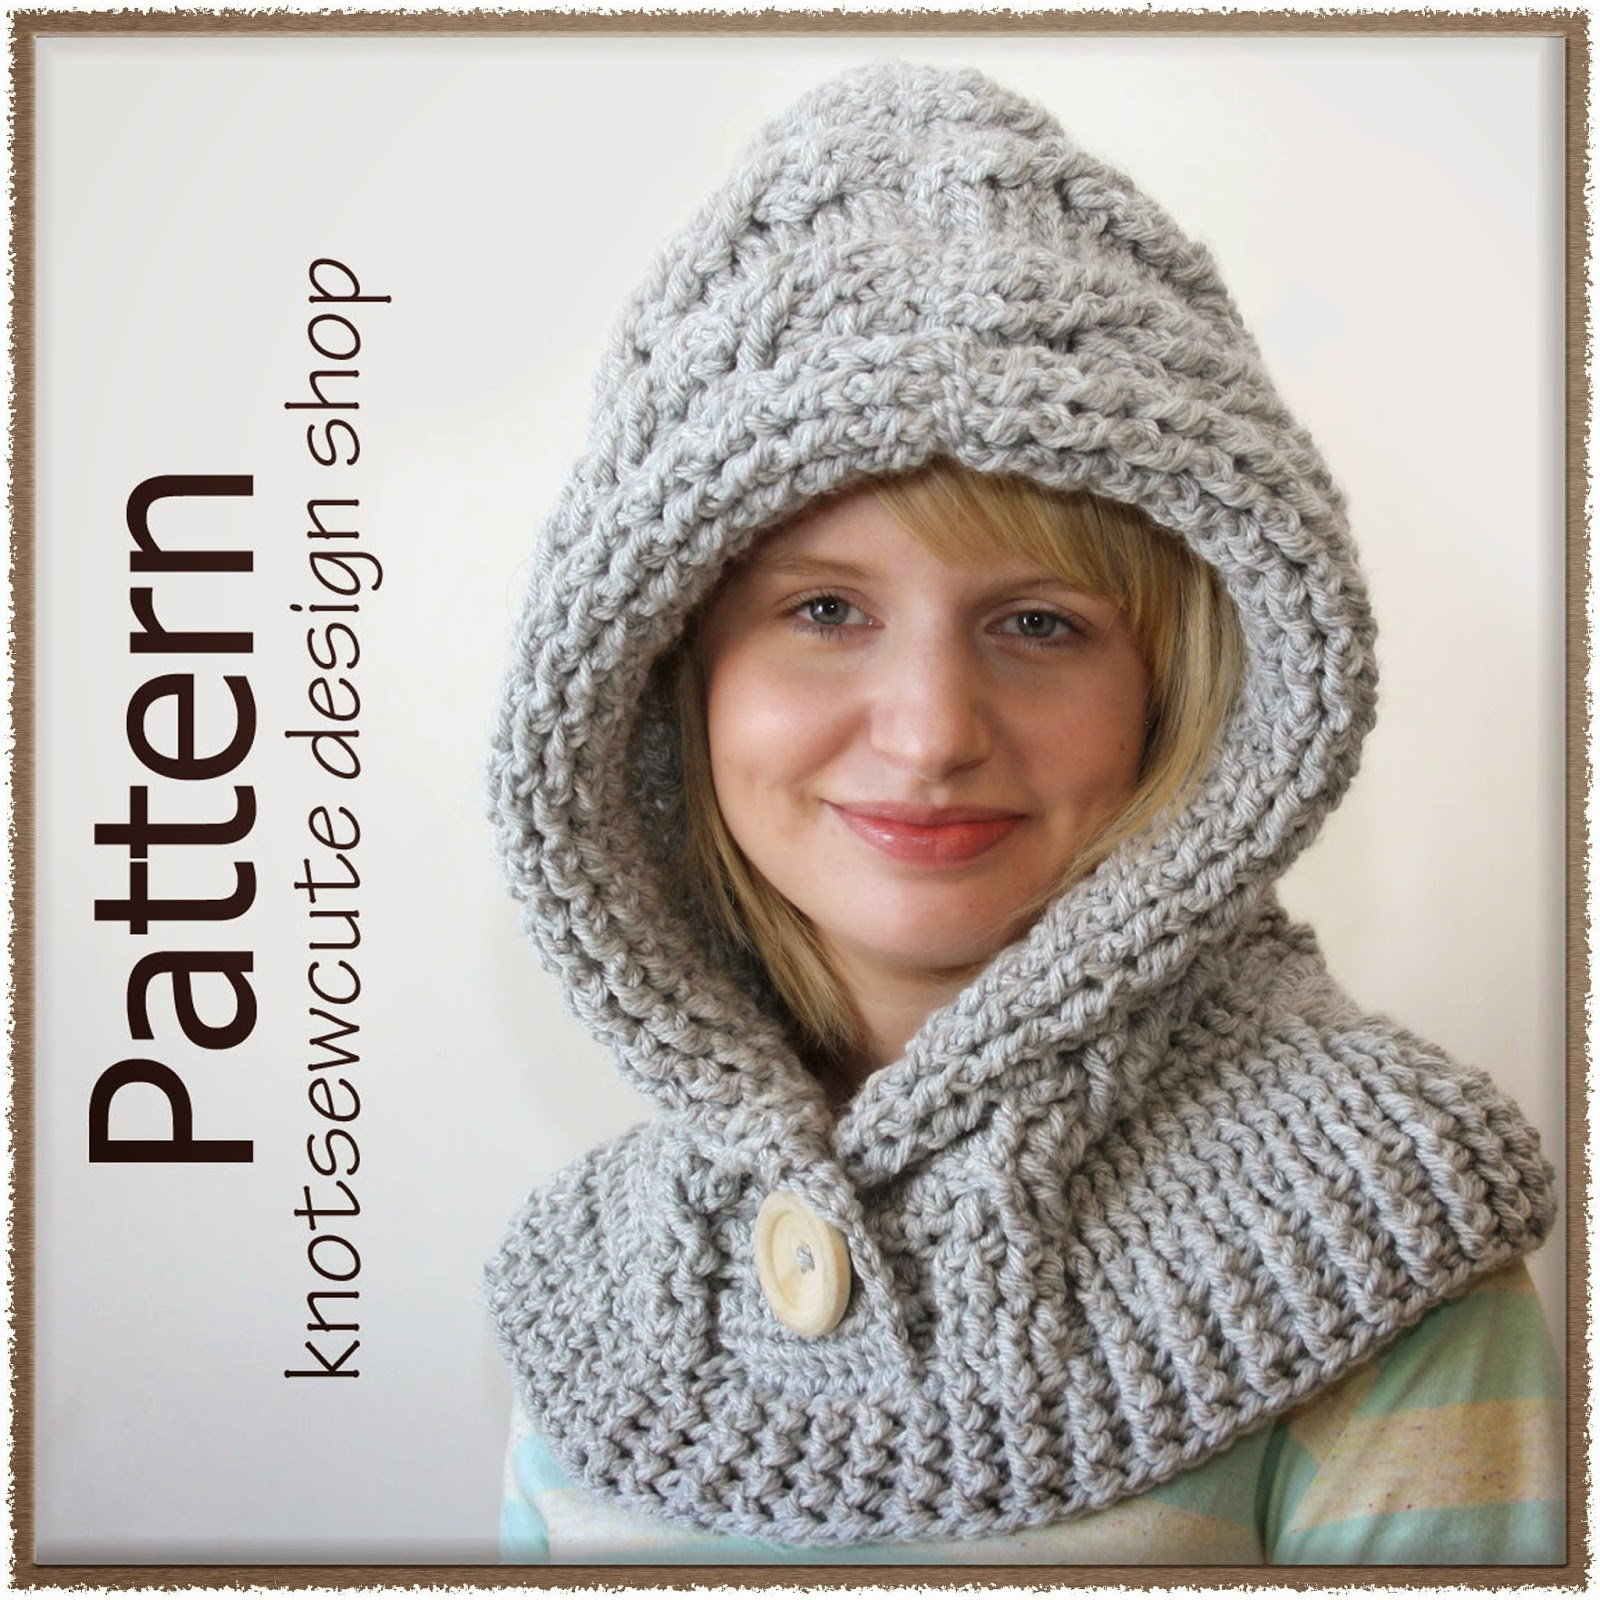 http://www.ravelry.com/patterns/library/51-degrees-north